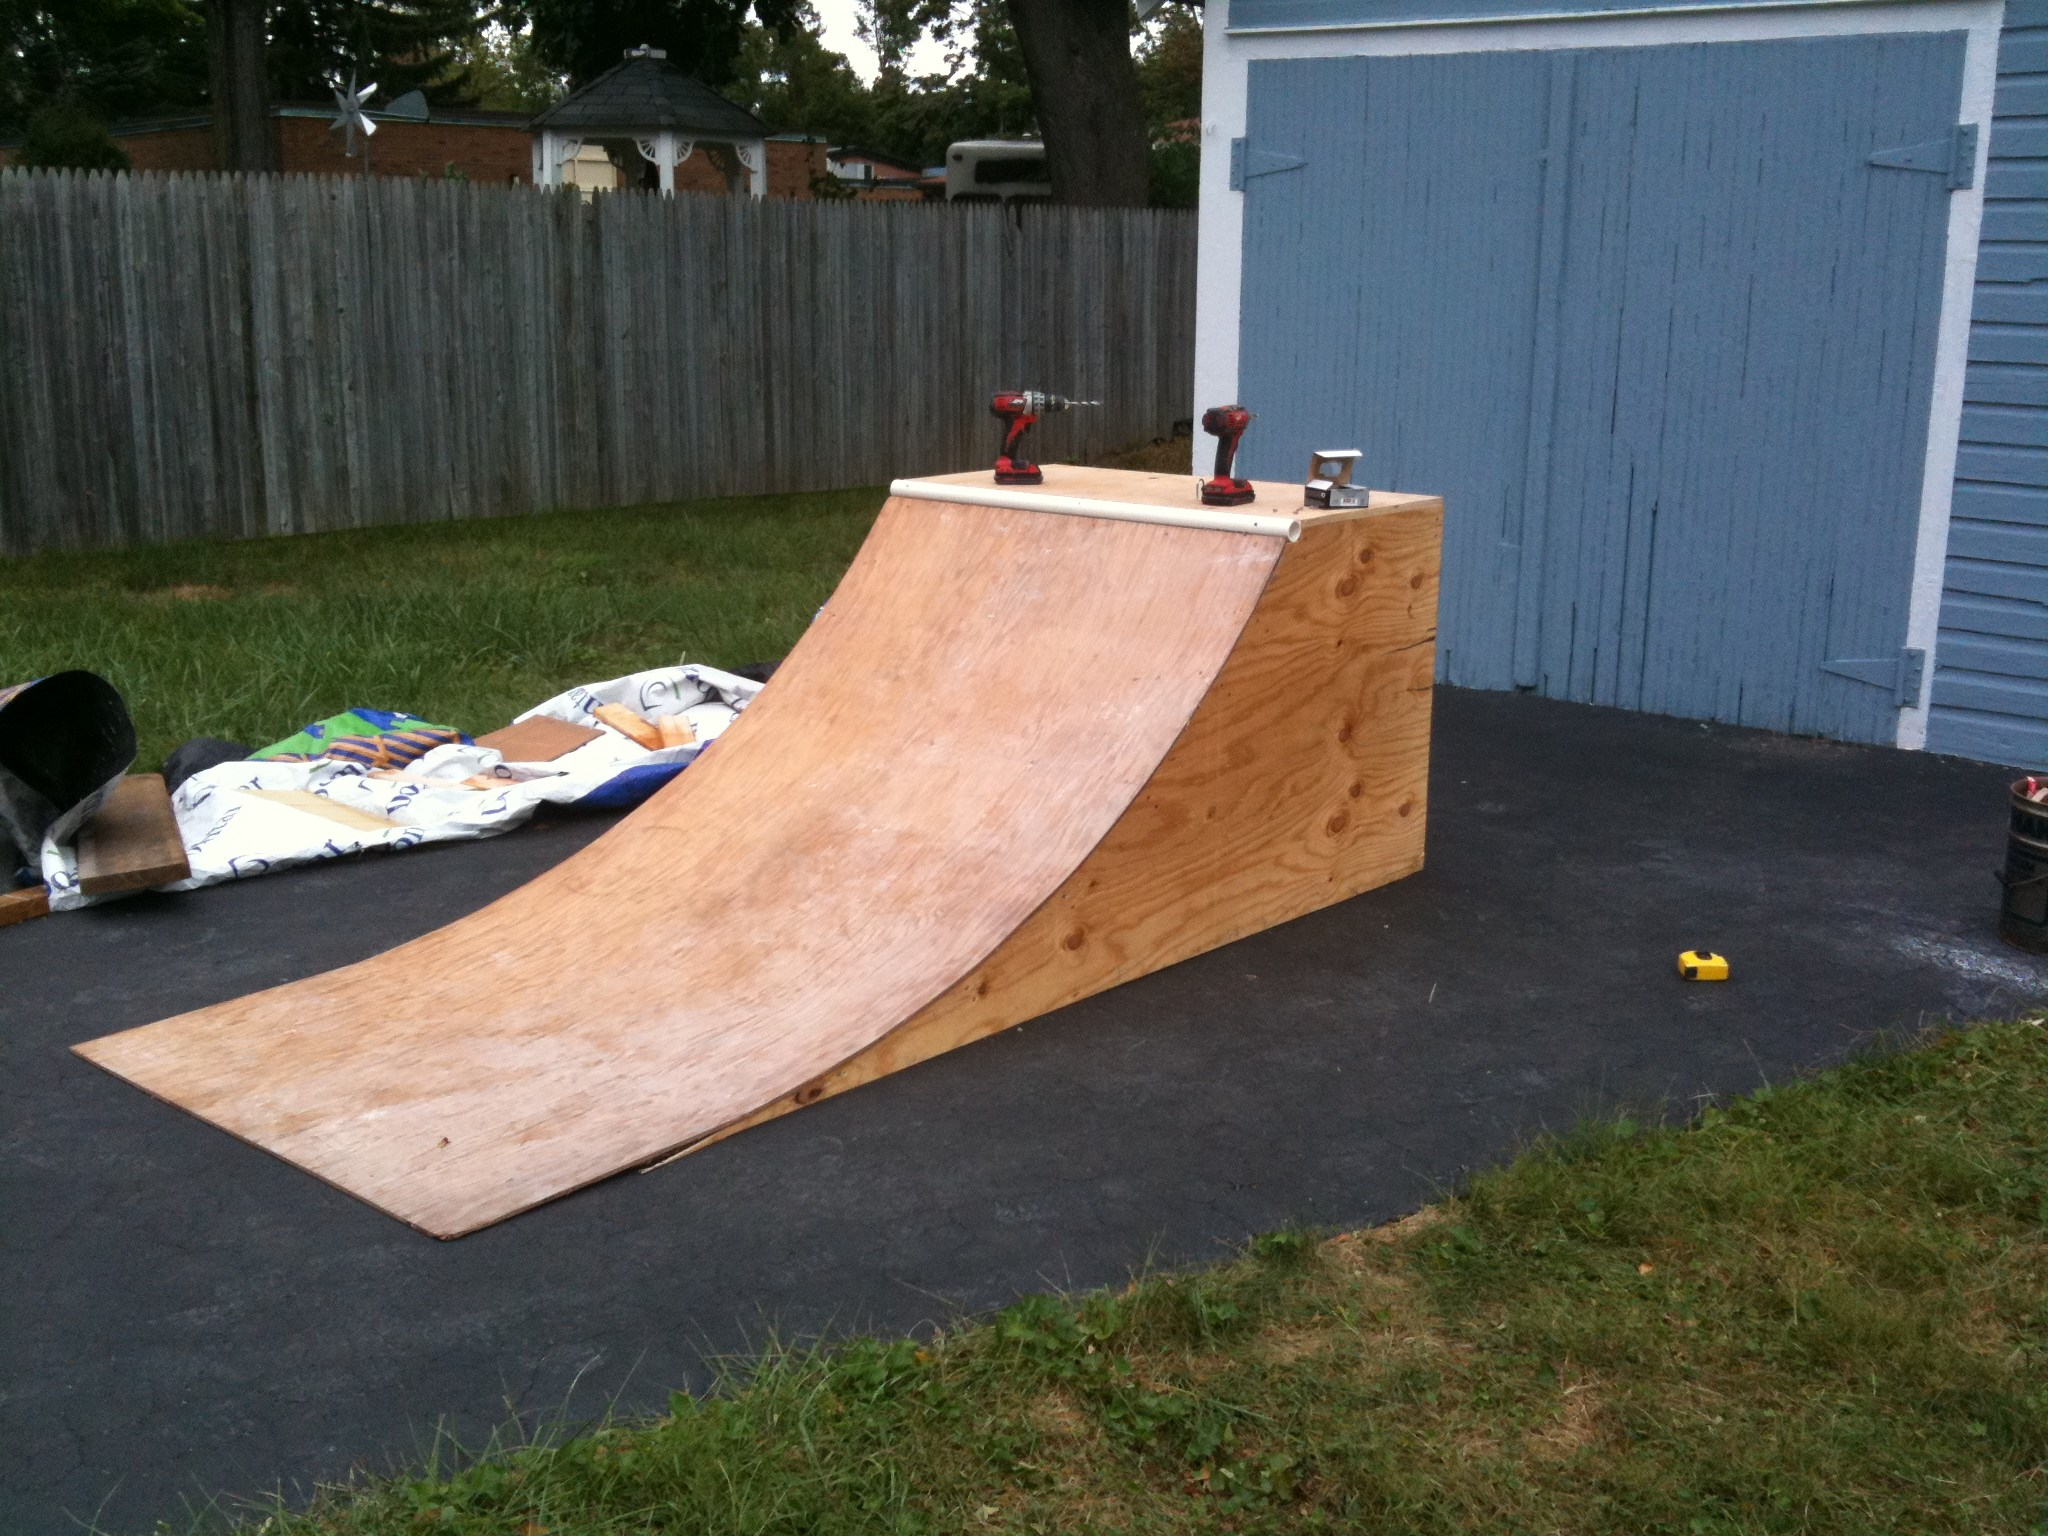 A Skate Ramp for my Son - WNY Handyman